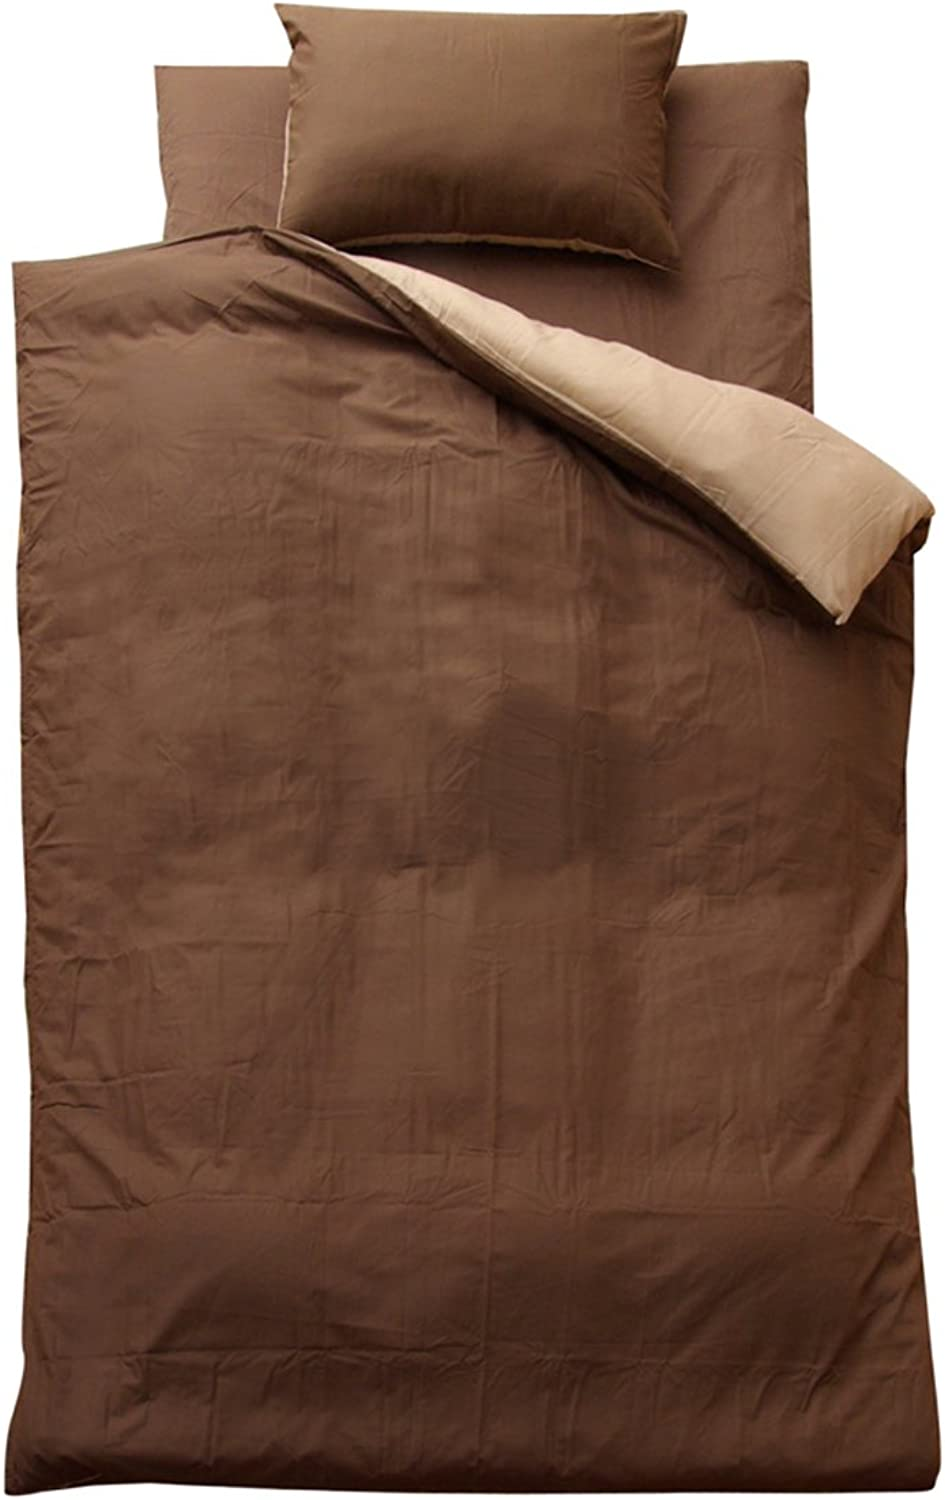 Kamiyuto Ice HiCo Duvet Cover Three Sets Solid color Reversible Riva S Cover Three Points It's Dark Brown Dark Beige Single Long